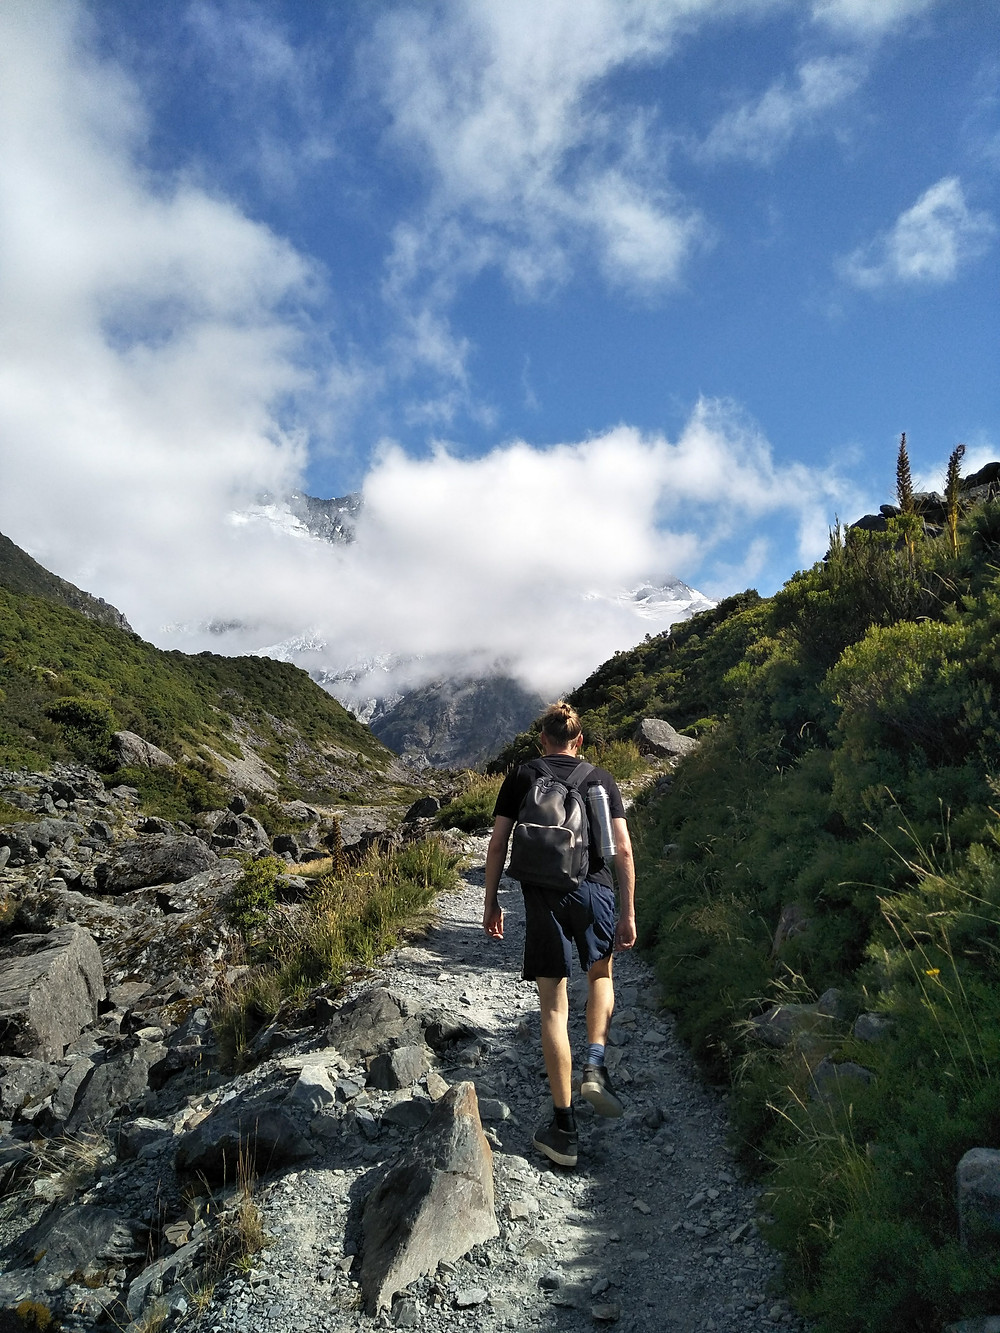 Jonas, wearing a t shirt and shorts with hiking boots and a backpack, walks up a gravel rocky trail towards a snow capped mountain with green shrubs to the side